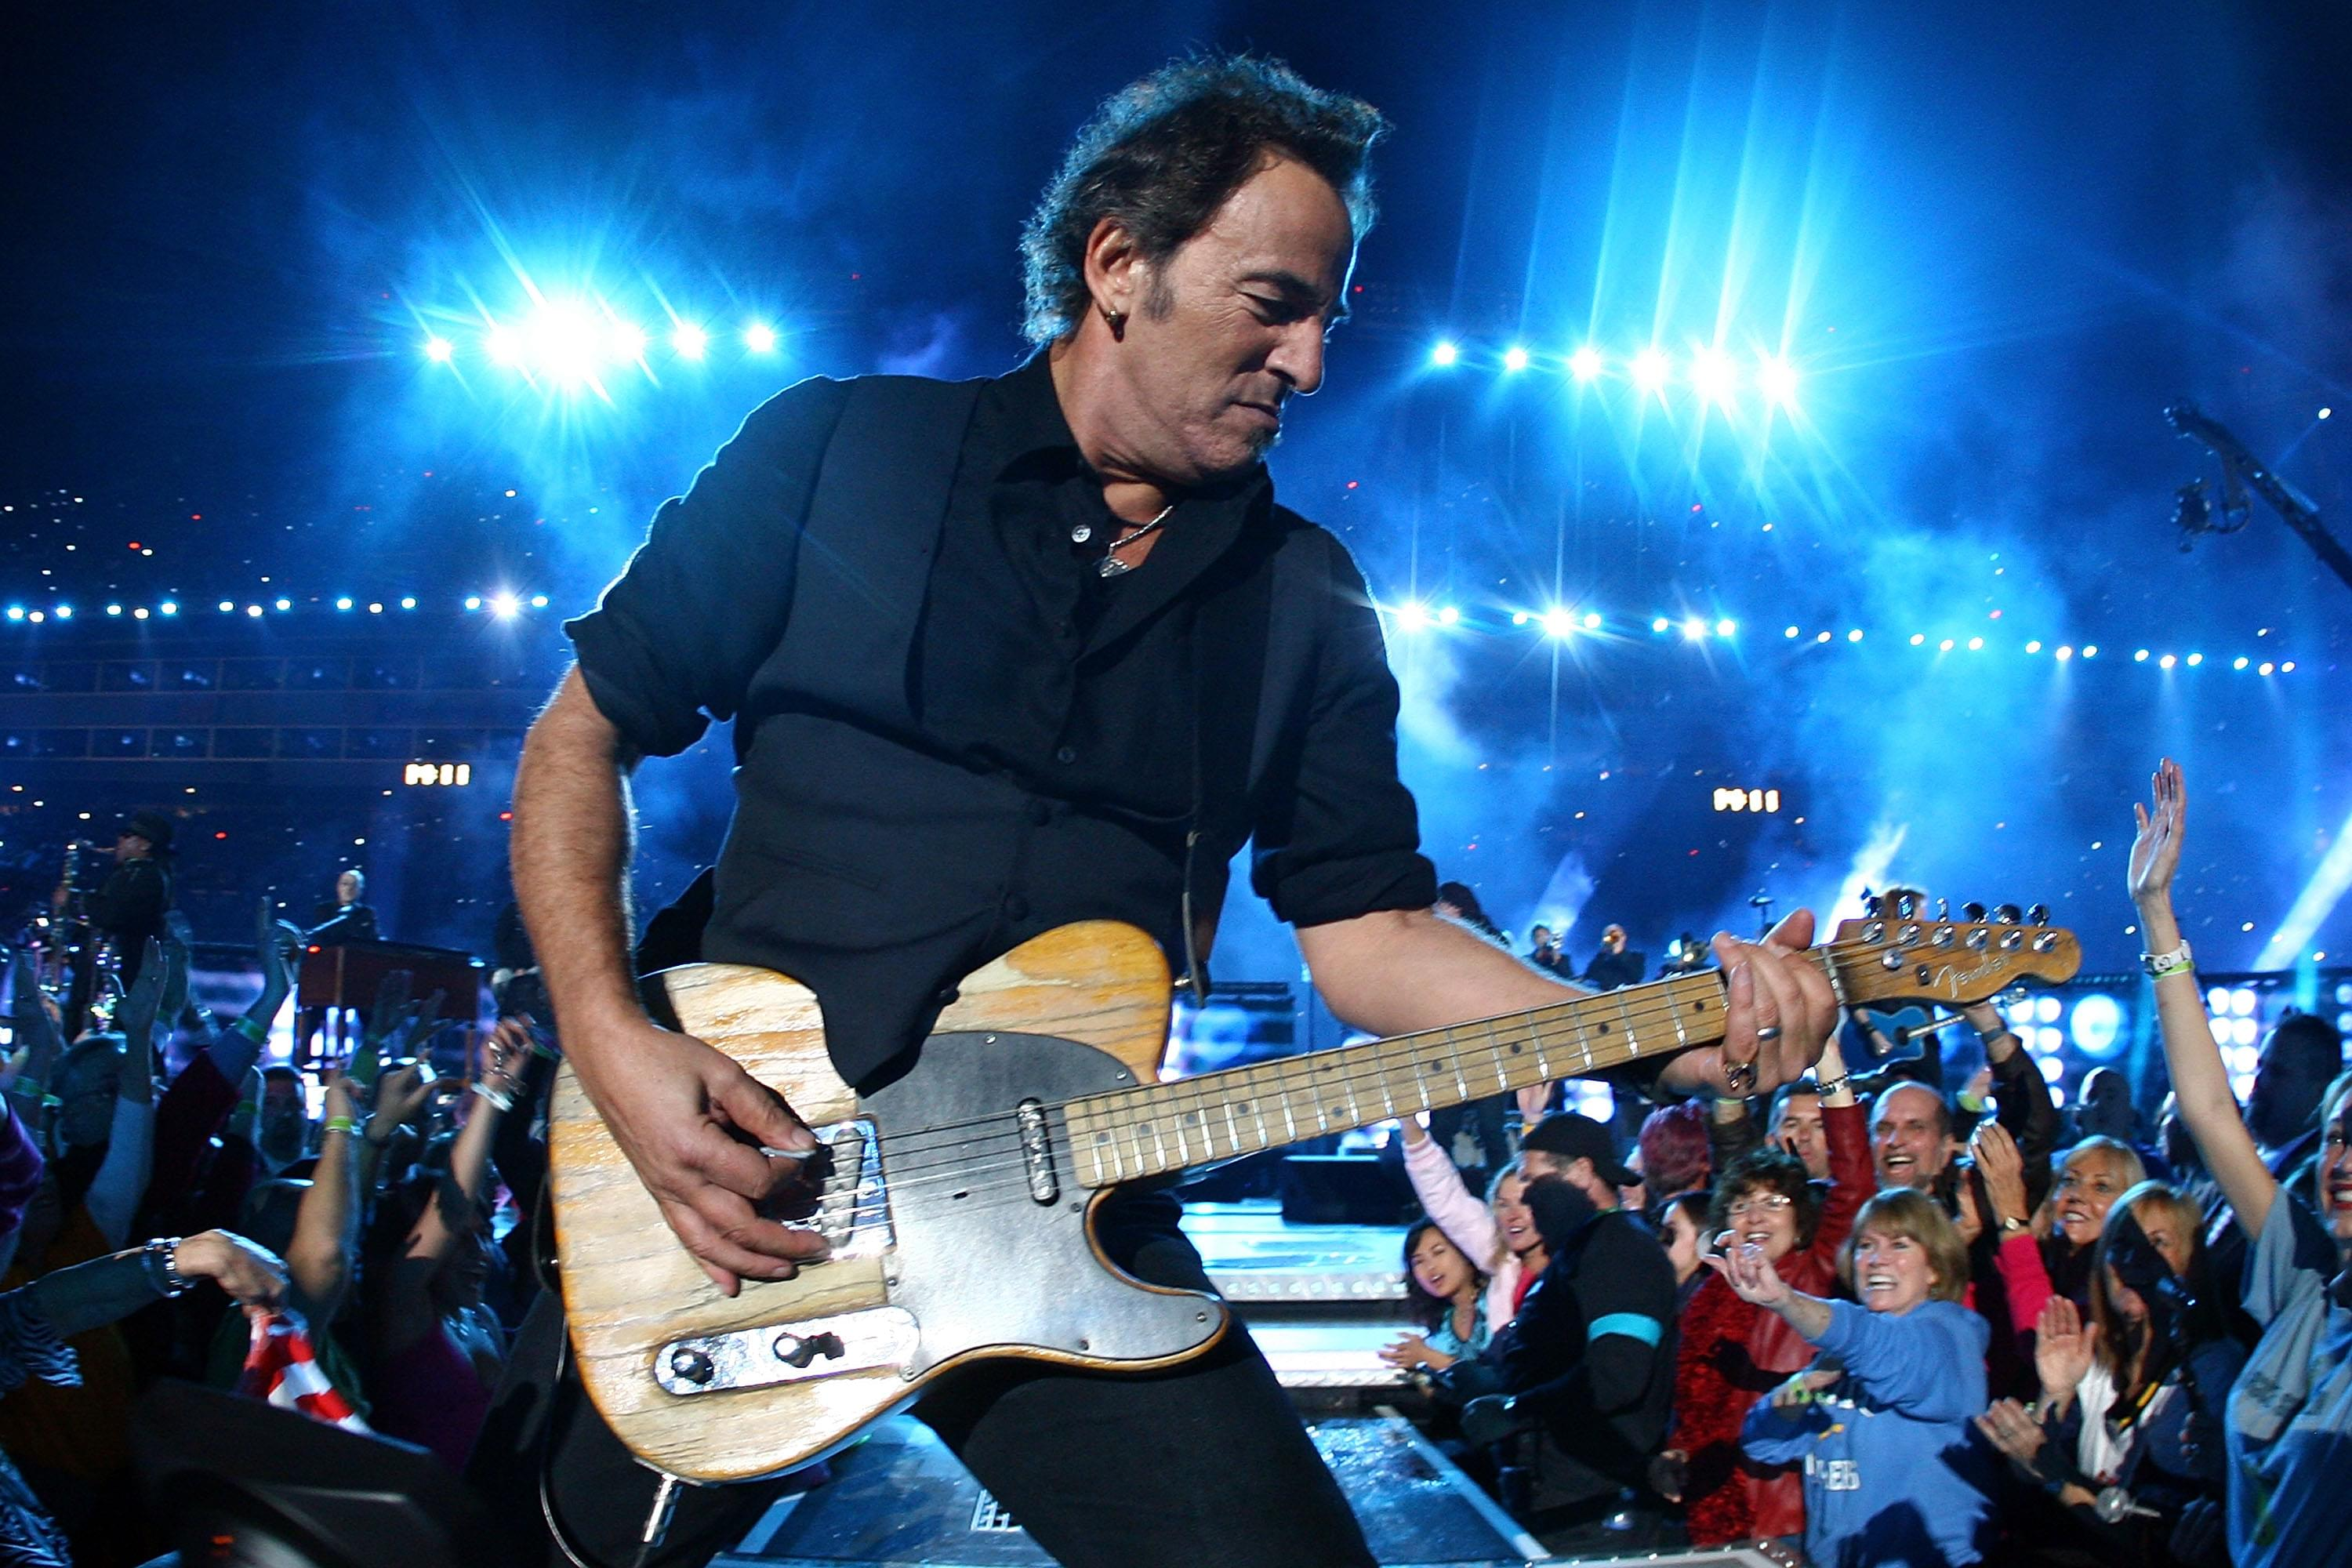 Bruce Springsteen releases new album 'Letter To You' TODAY